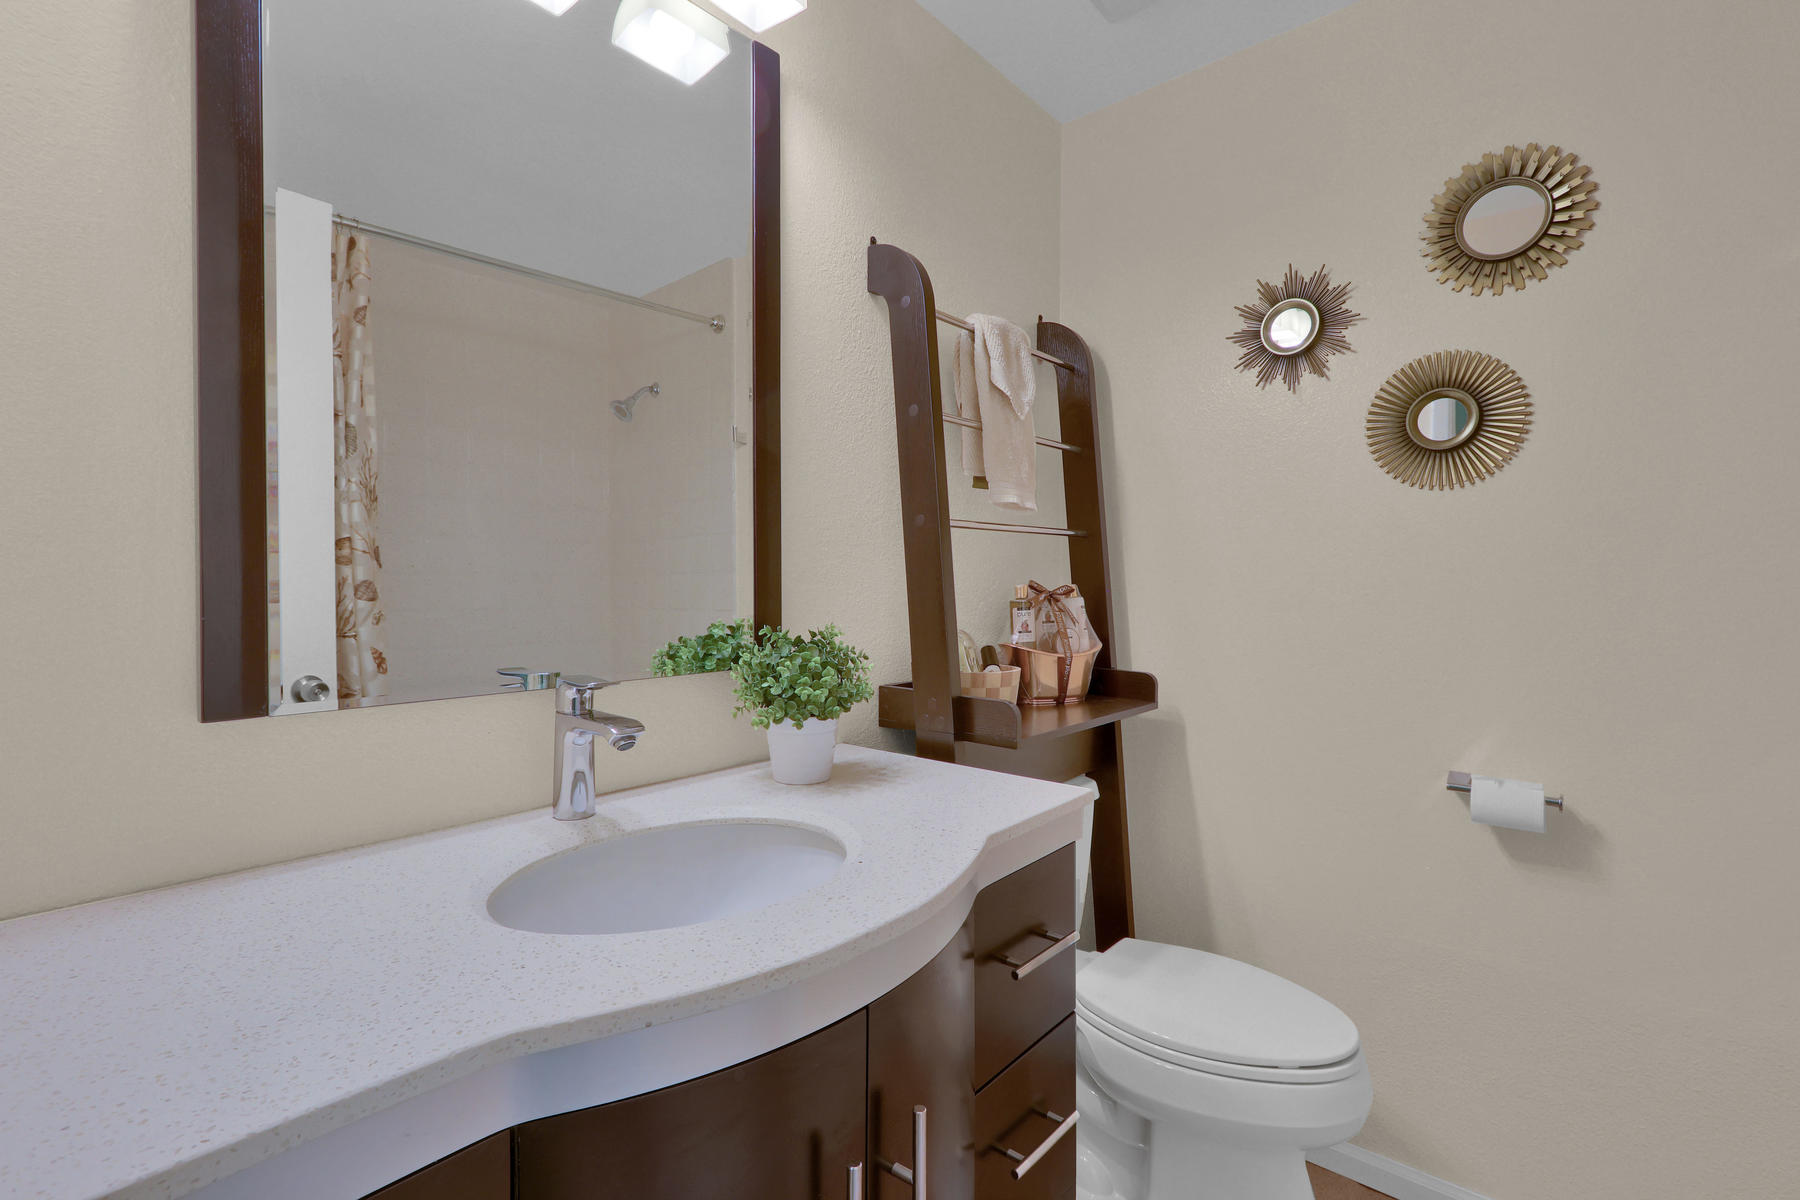 8490 Independence Way Arvada-008-015-Bathroom-MLS_Size.jpg